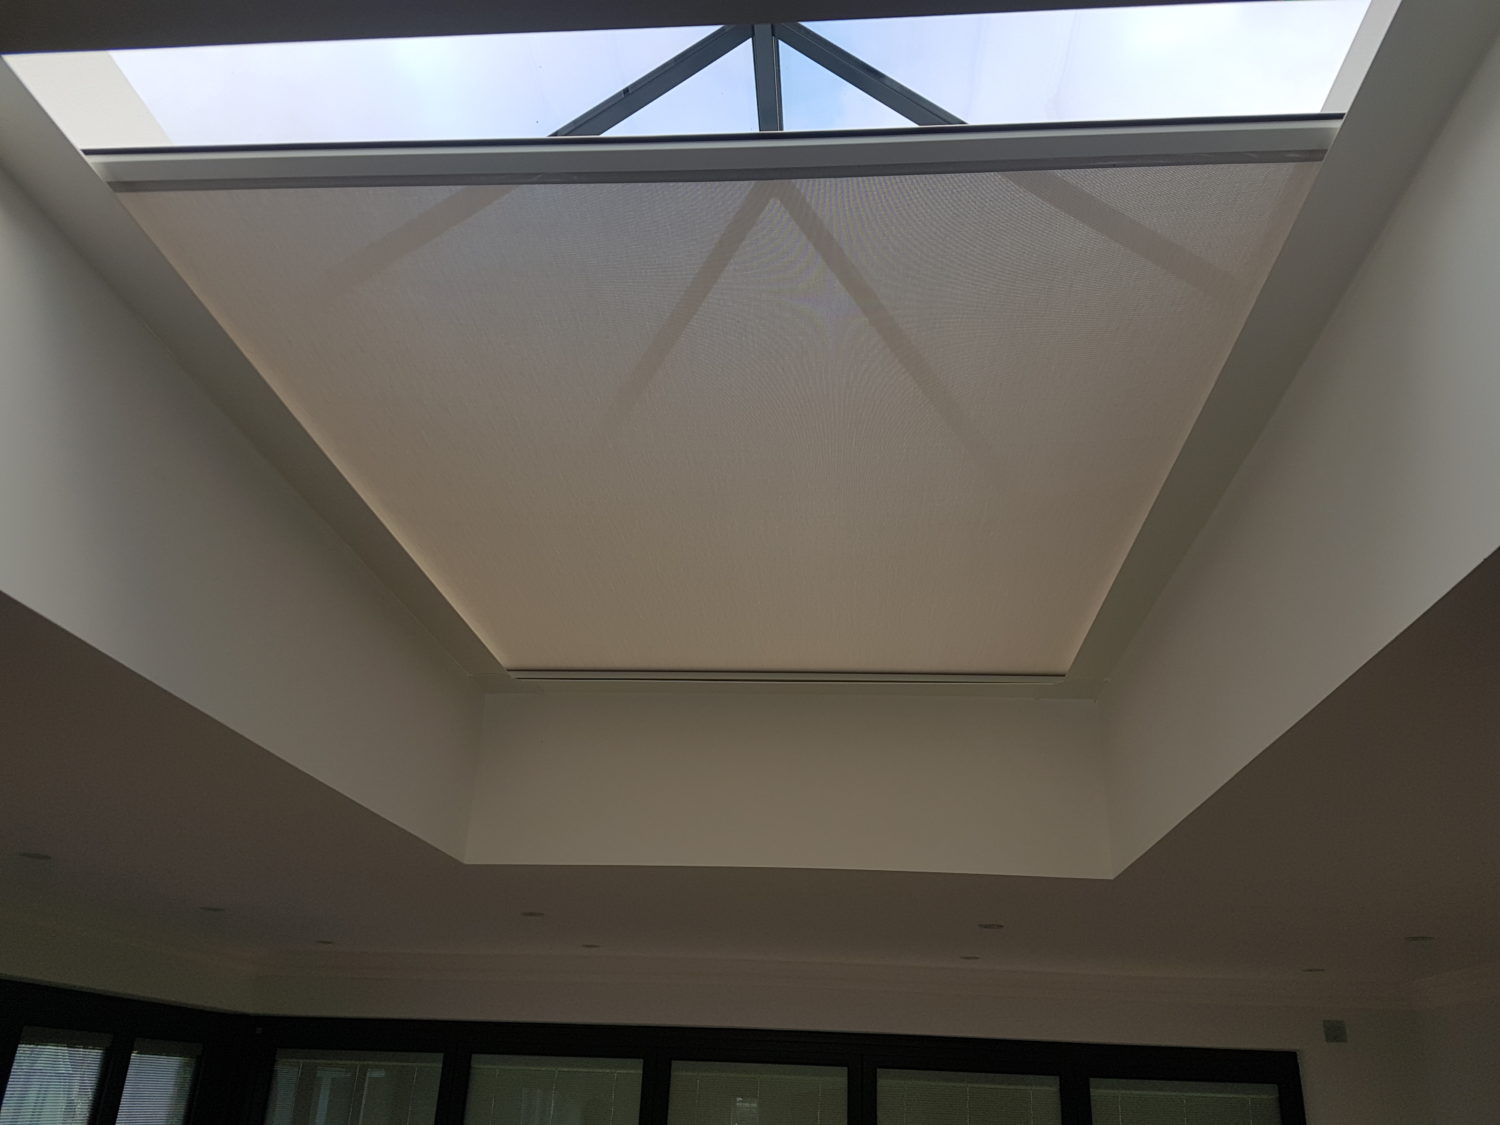 Roof Lantern Blinds What Are My Options Barlow Blinds